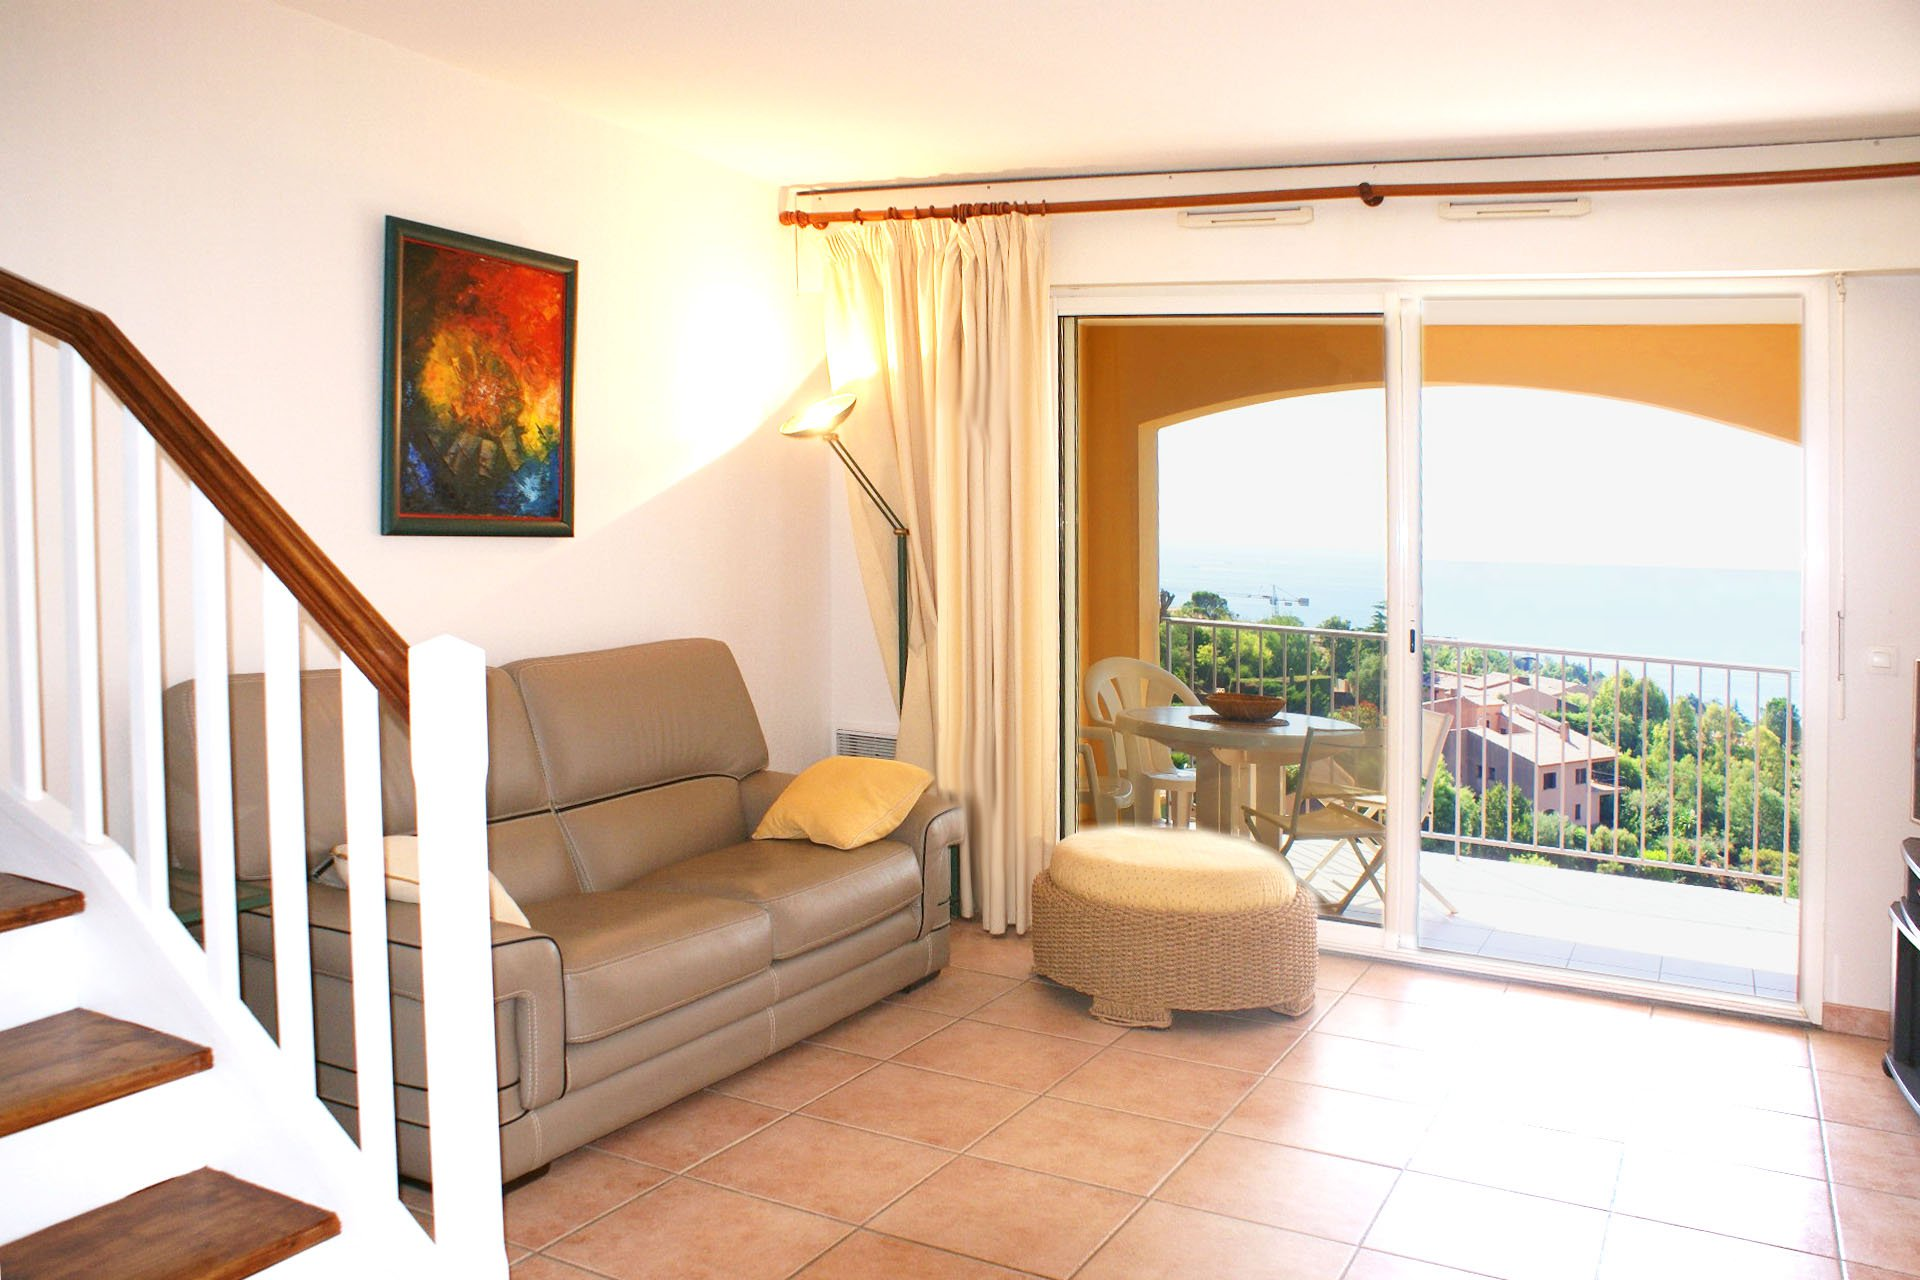 terraced house living room, 2 bed rooms (4 sleeps) kitchen  2 terraces with beautiful sea view   * ROVI12 *